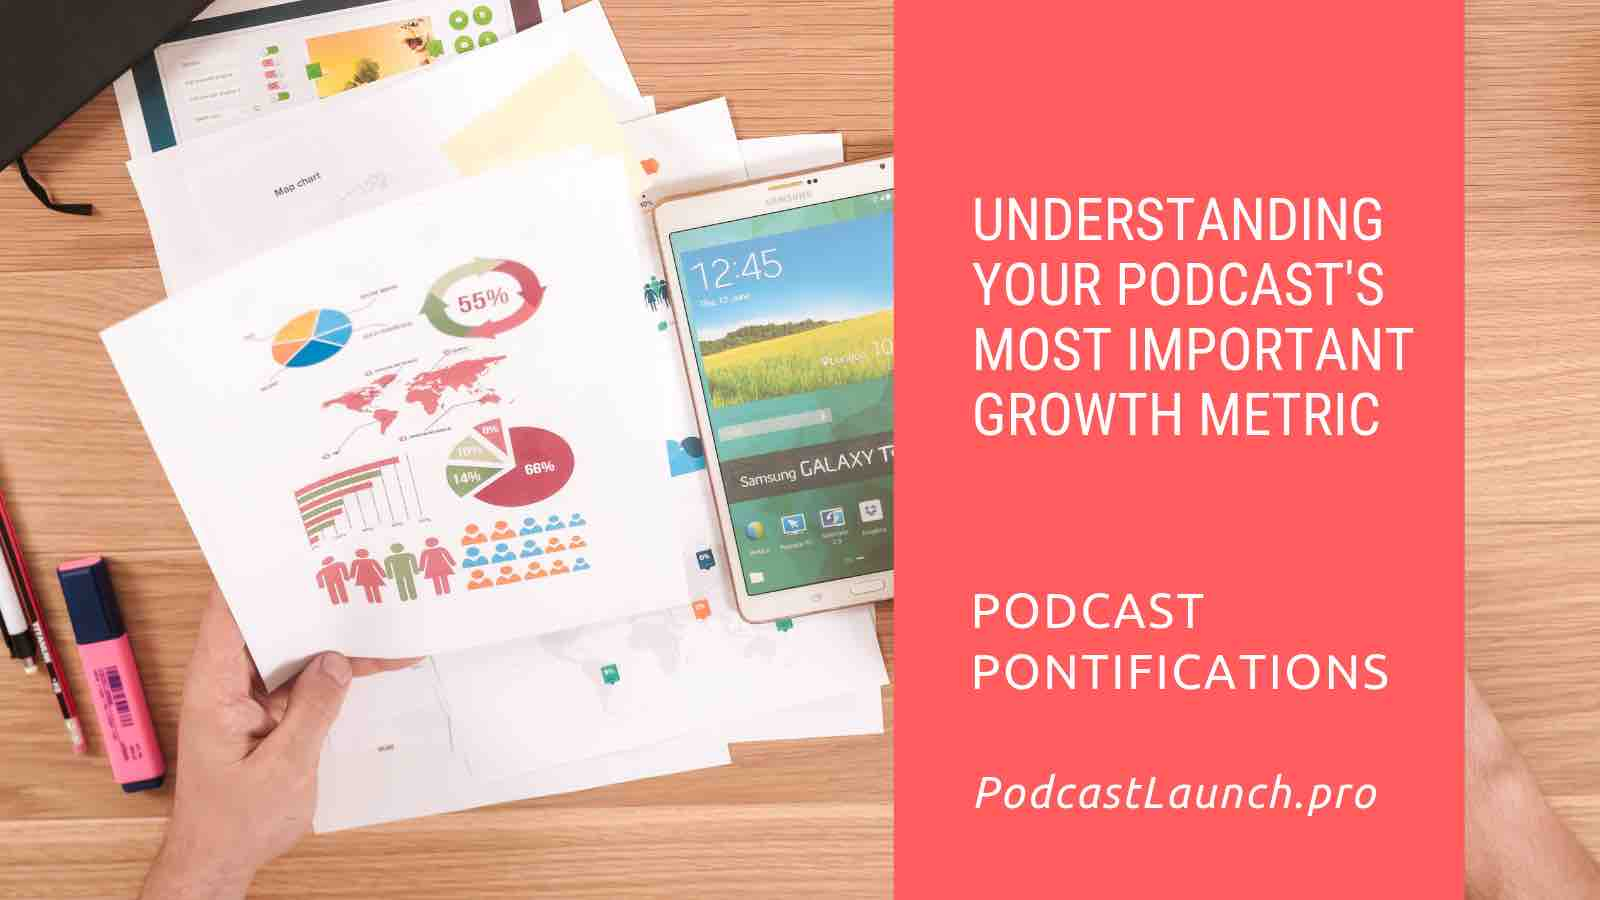 Understanding Your Podcast's Most Important Growth Metric